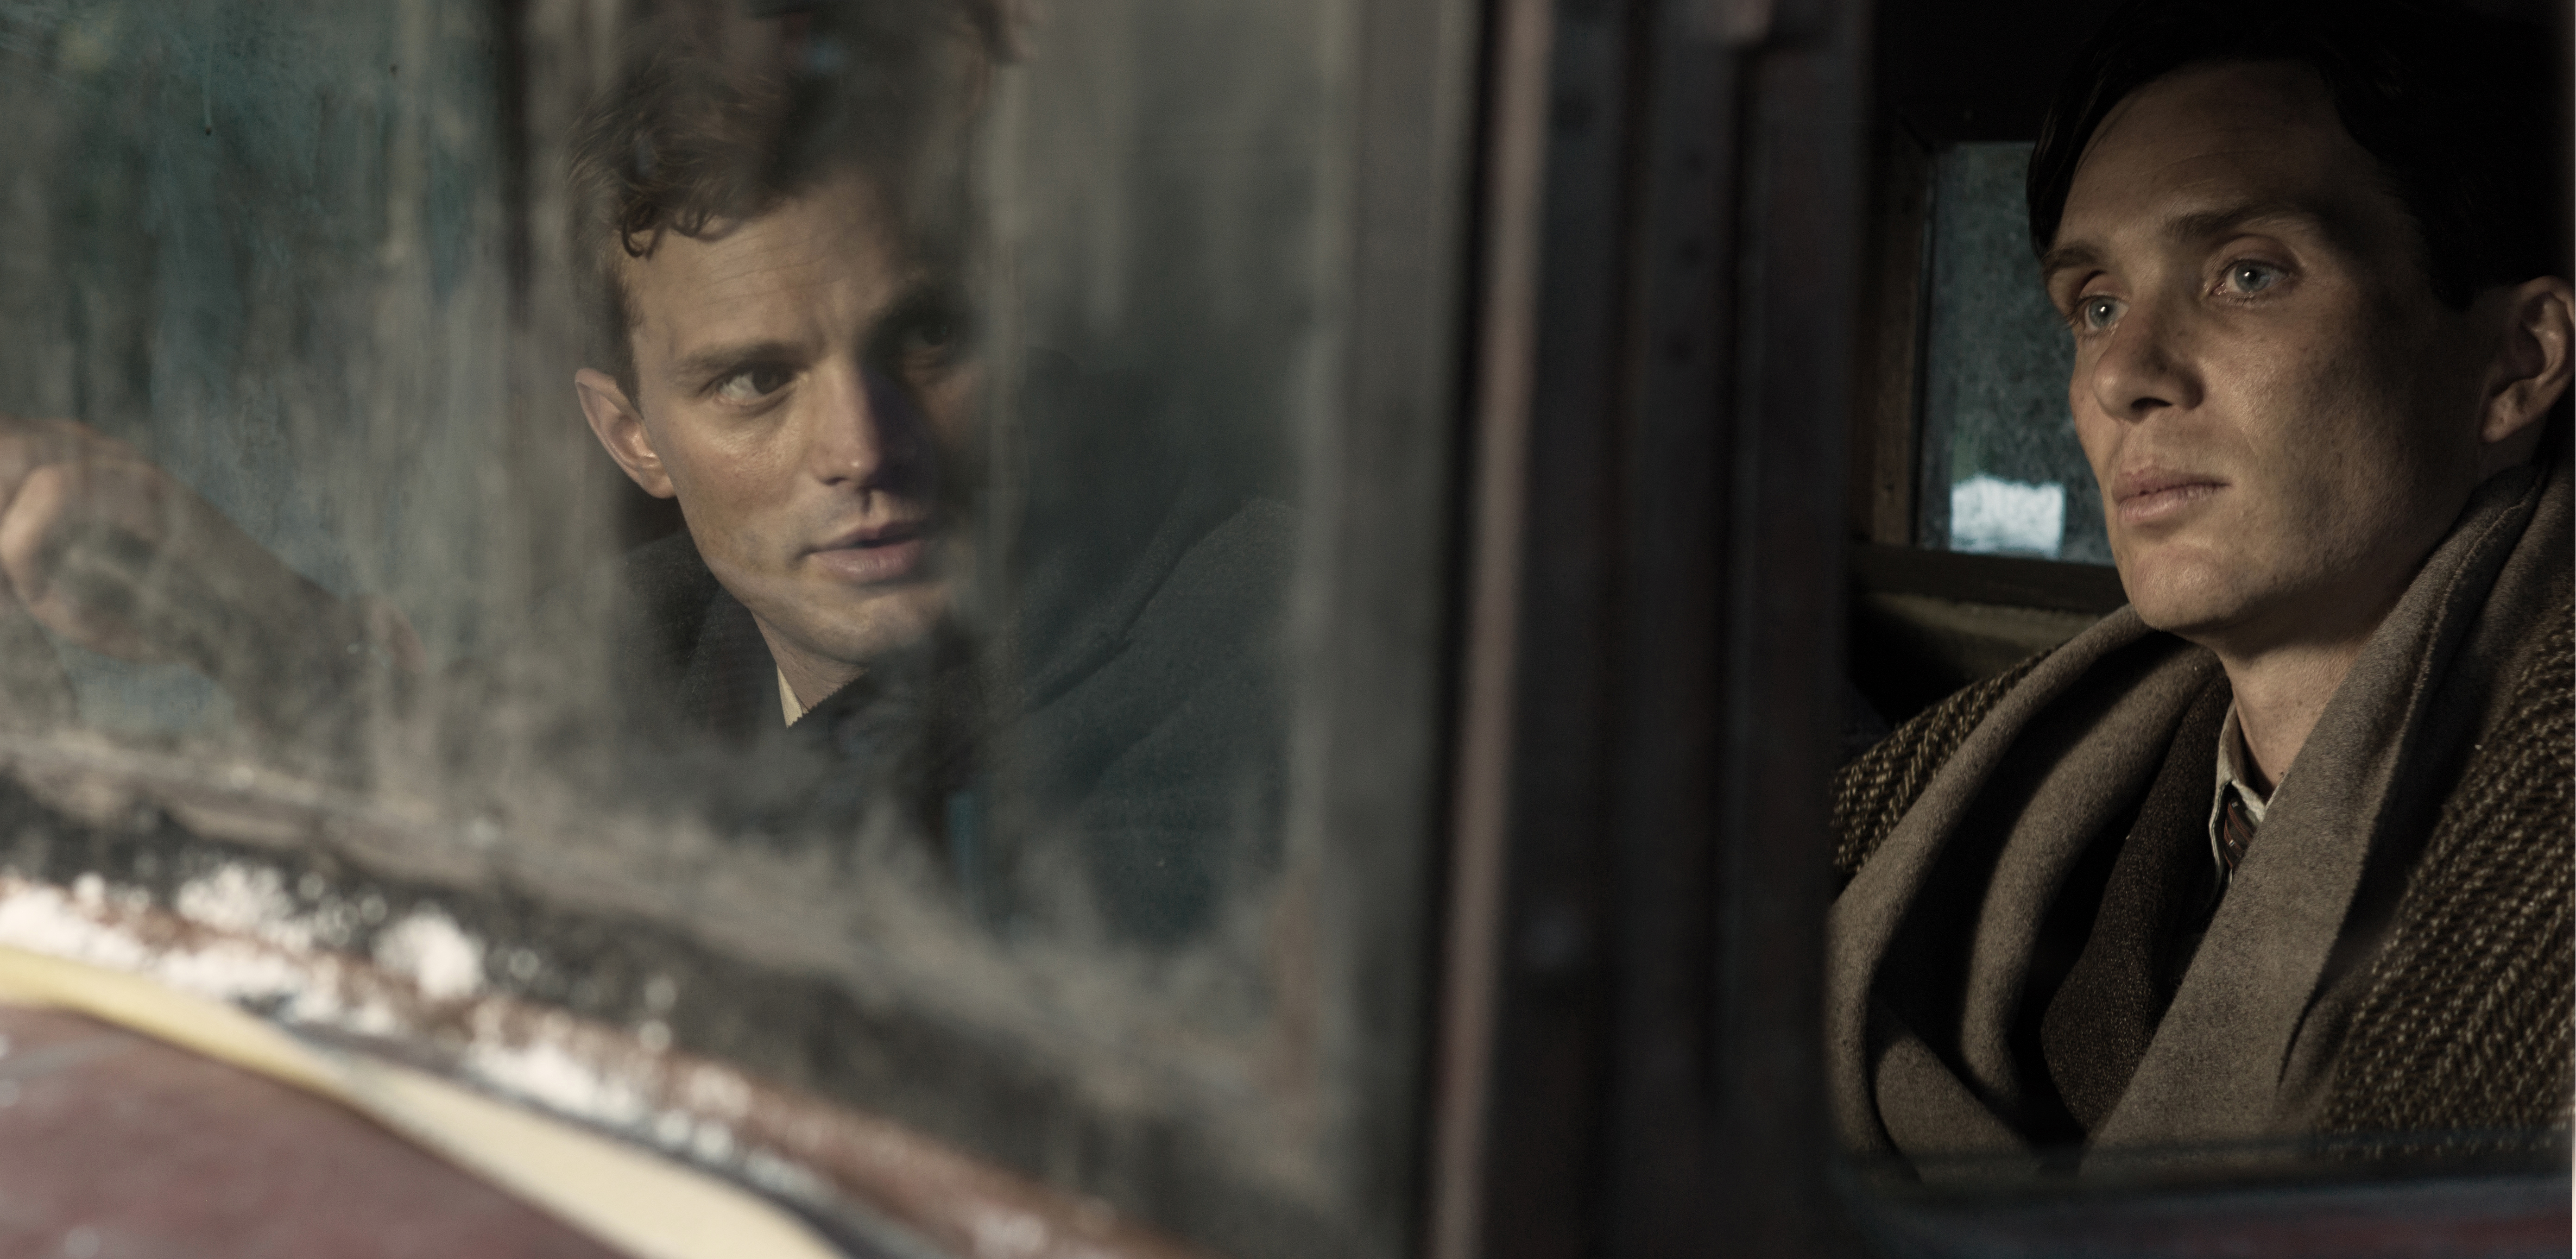 Anthropoid stars Cillian Murphy and Jamie Dornan